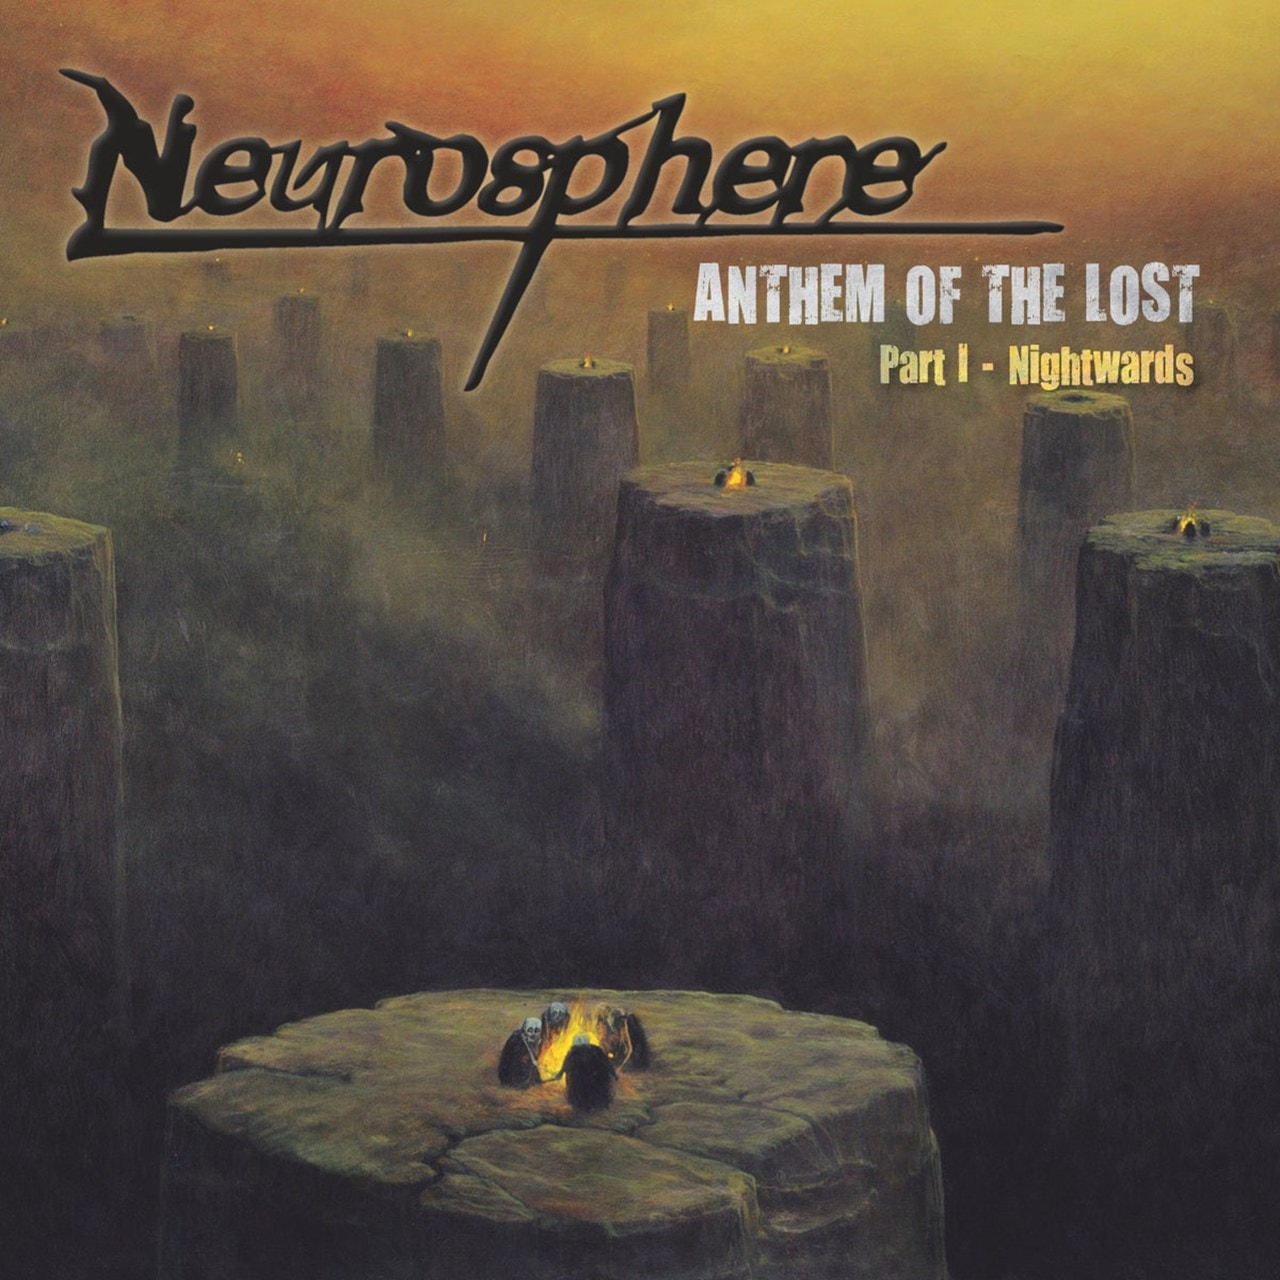 Anthem of the Lost: Part I - Nightwards - 1